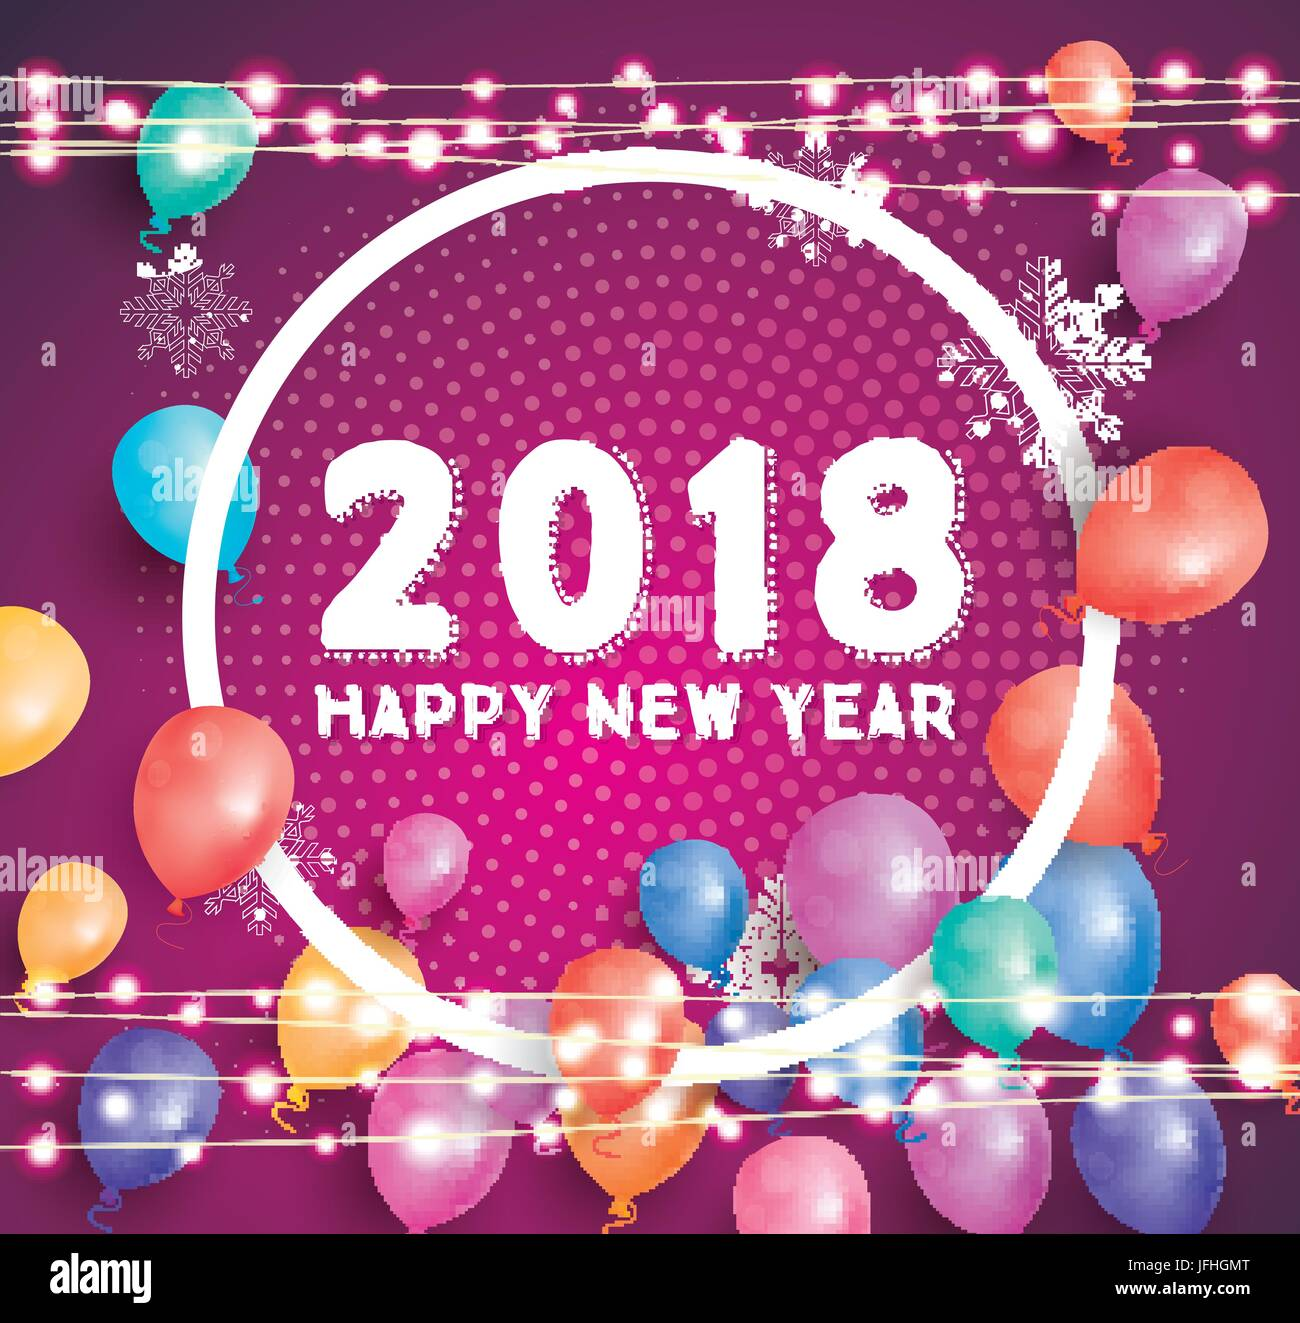 happy new year 2018 greeting card with flying balloons white frame and neon garlands vector illustration